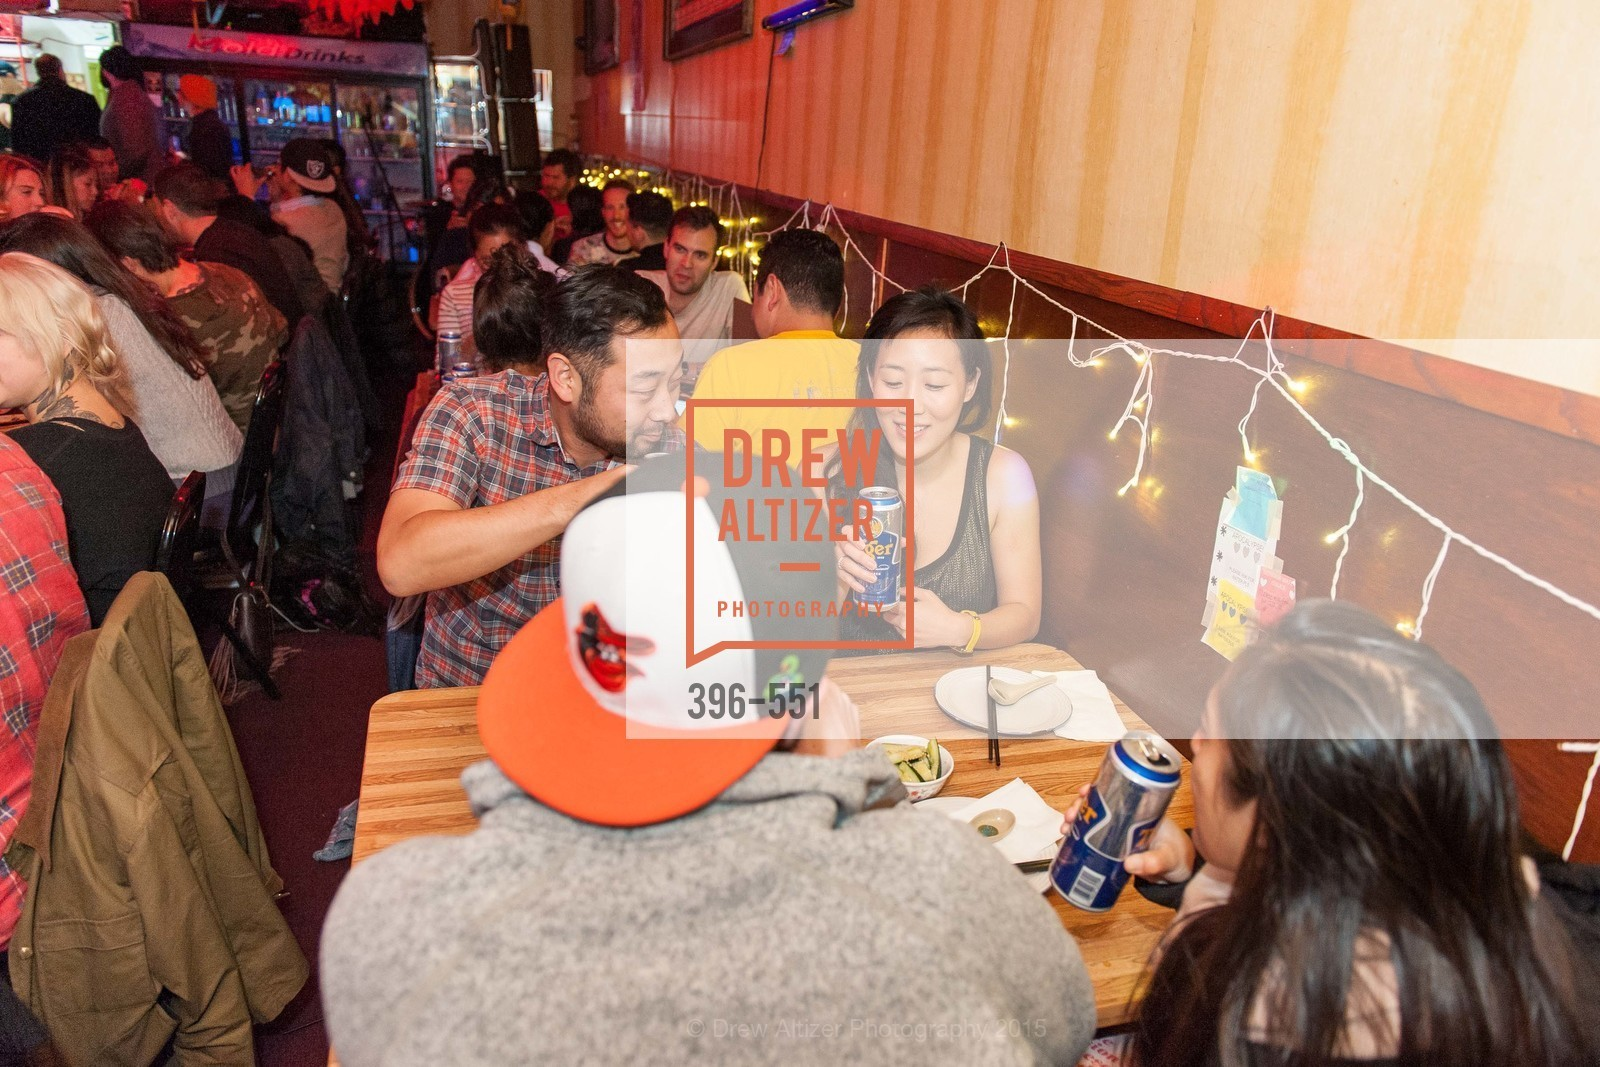 Extras, Mission Chinese Food Cookbook Release Dinner, November 16th, 2015, Photo,Drew Altizer, Drew Altizer Photography, full-service event agency, private events, San Francisco photographer, photographer California